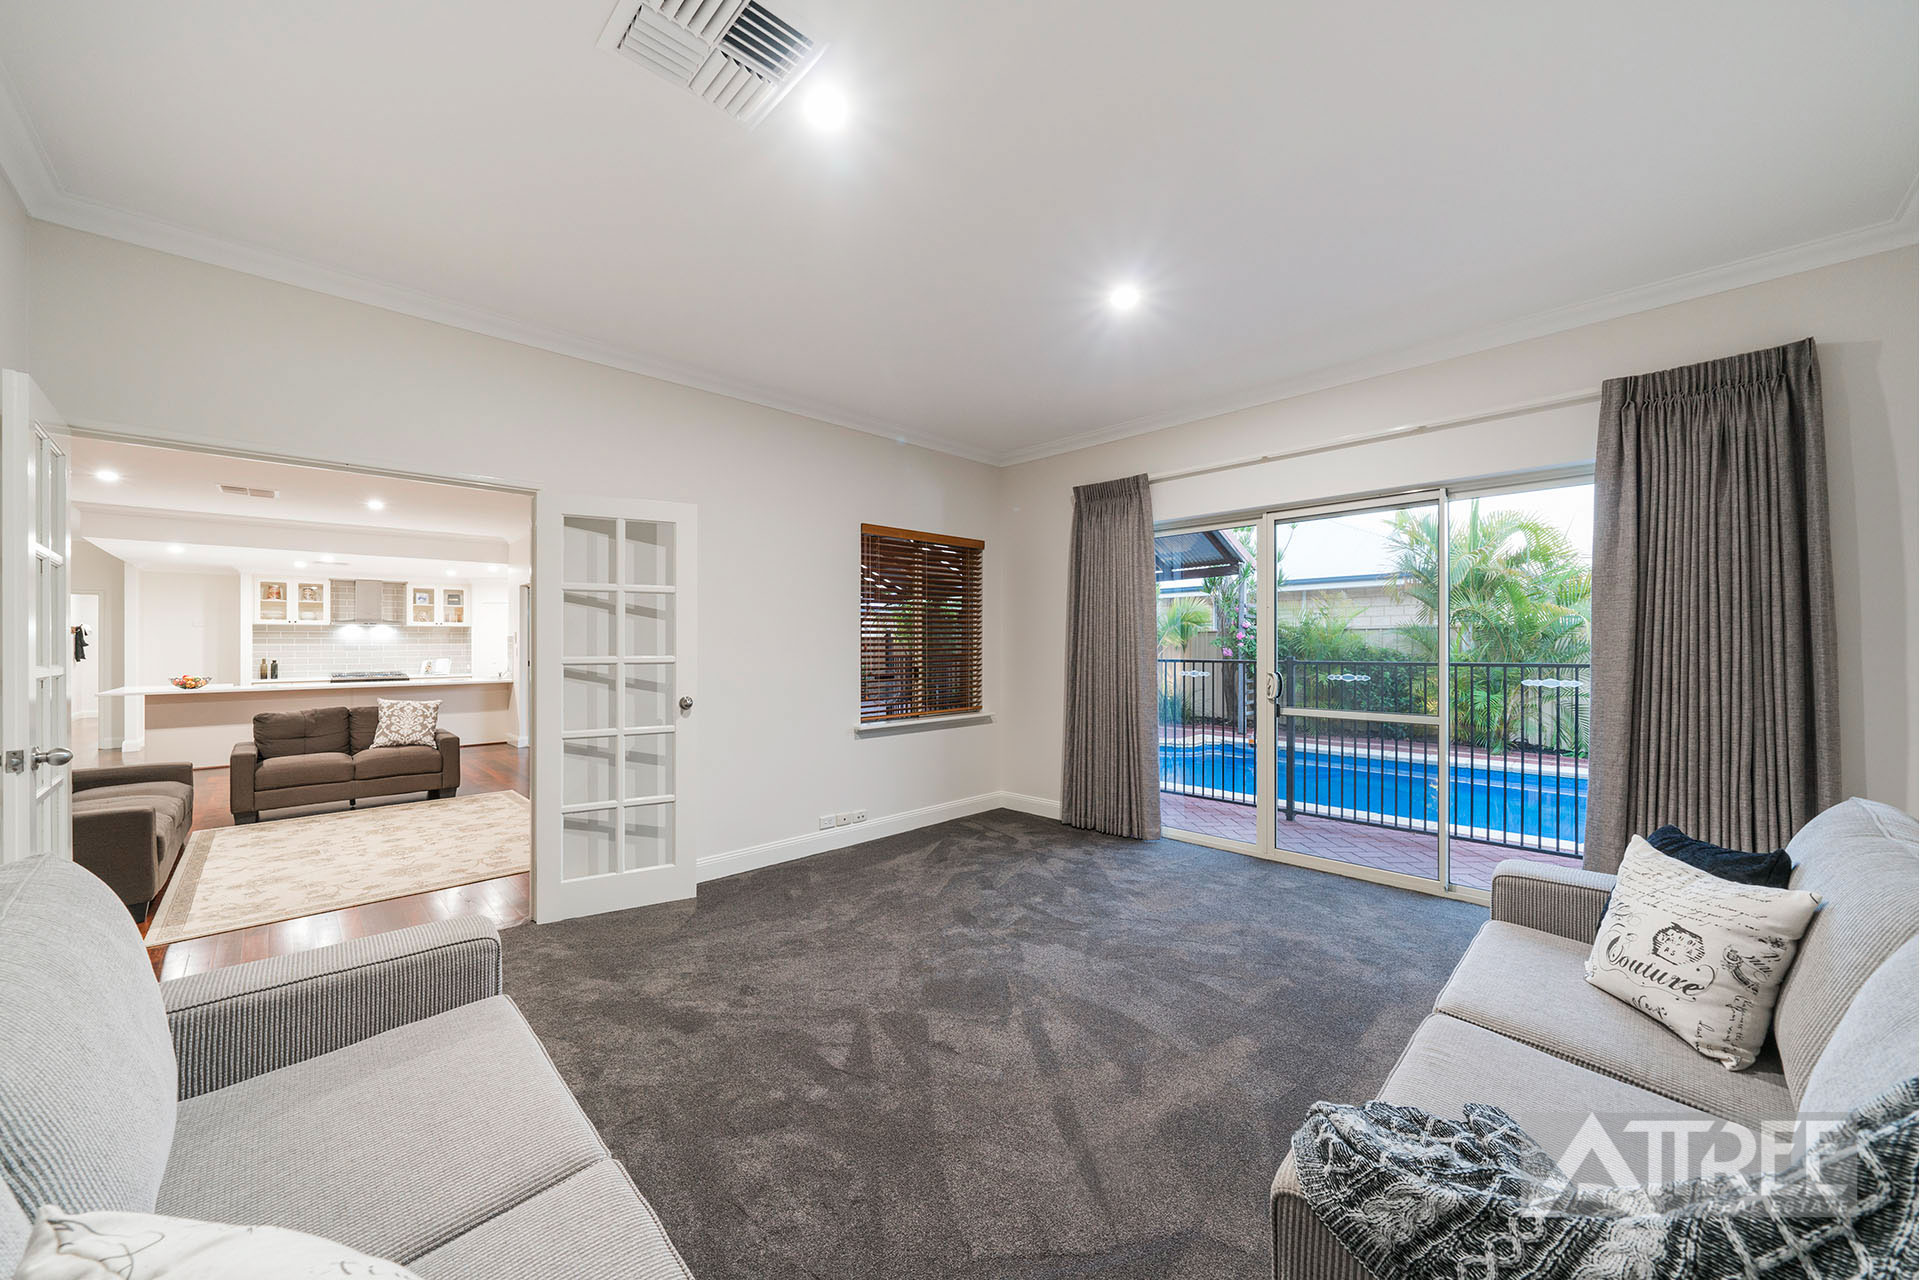 Property for sale in CANNING VALE, 10 Kiah Mews : Attree Real Estate